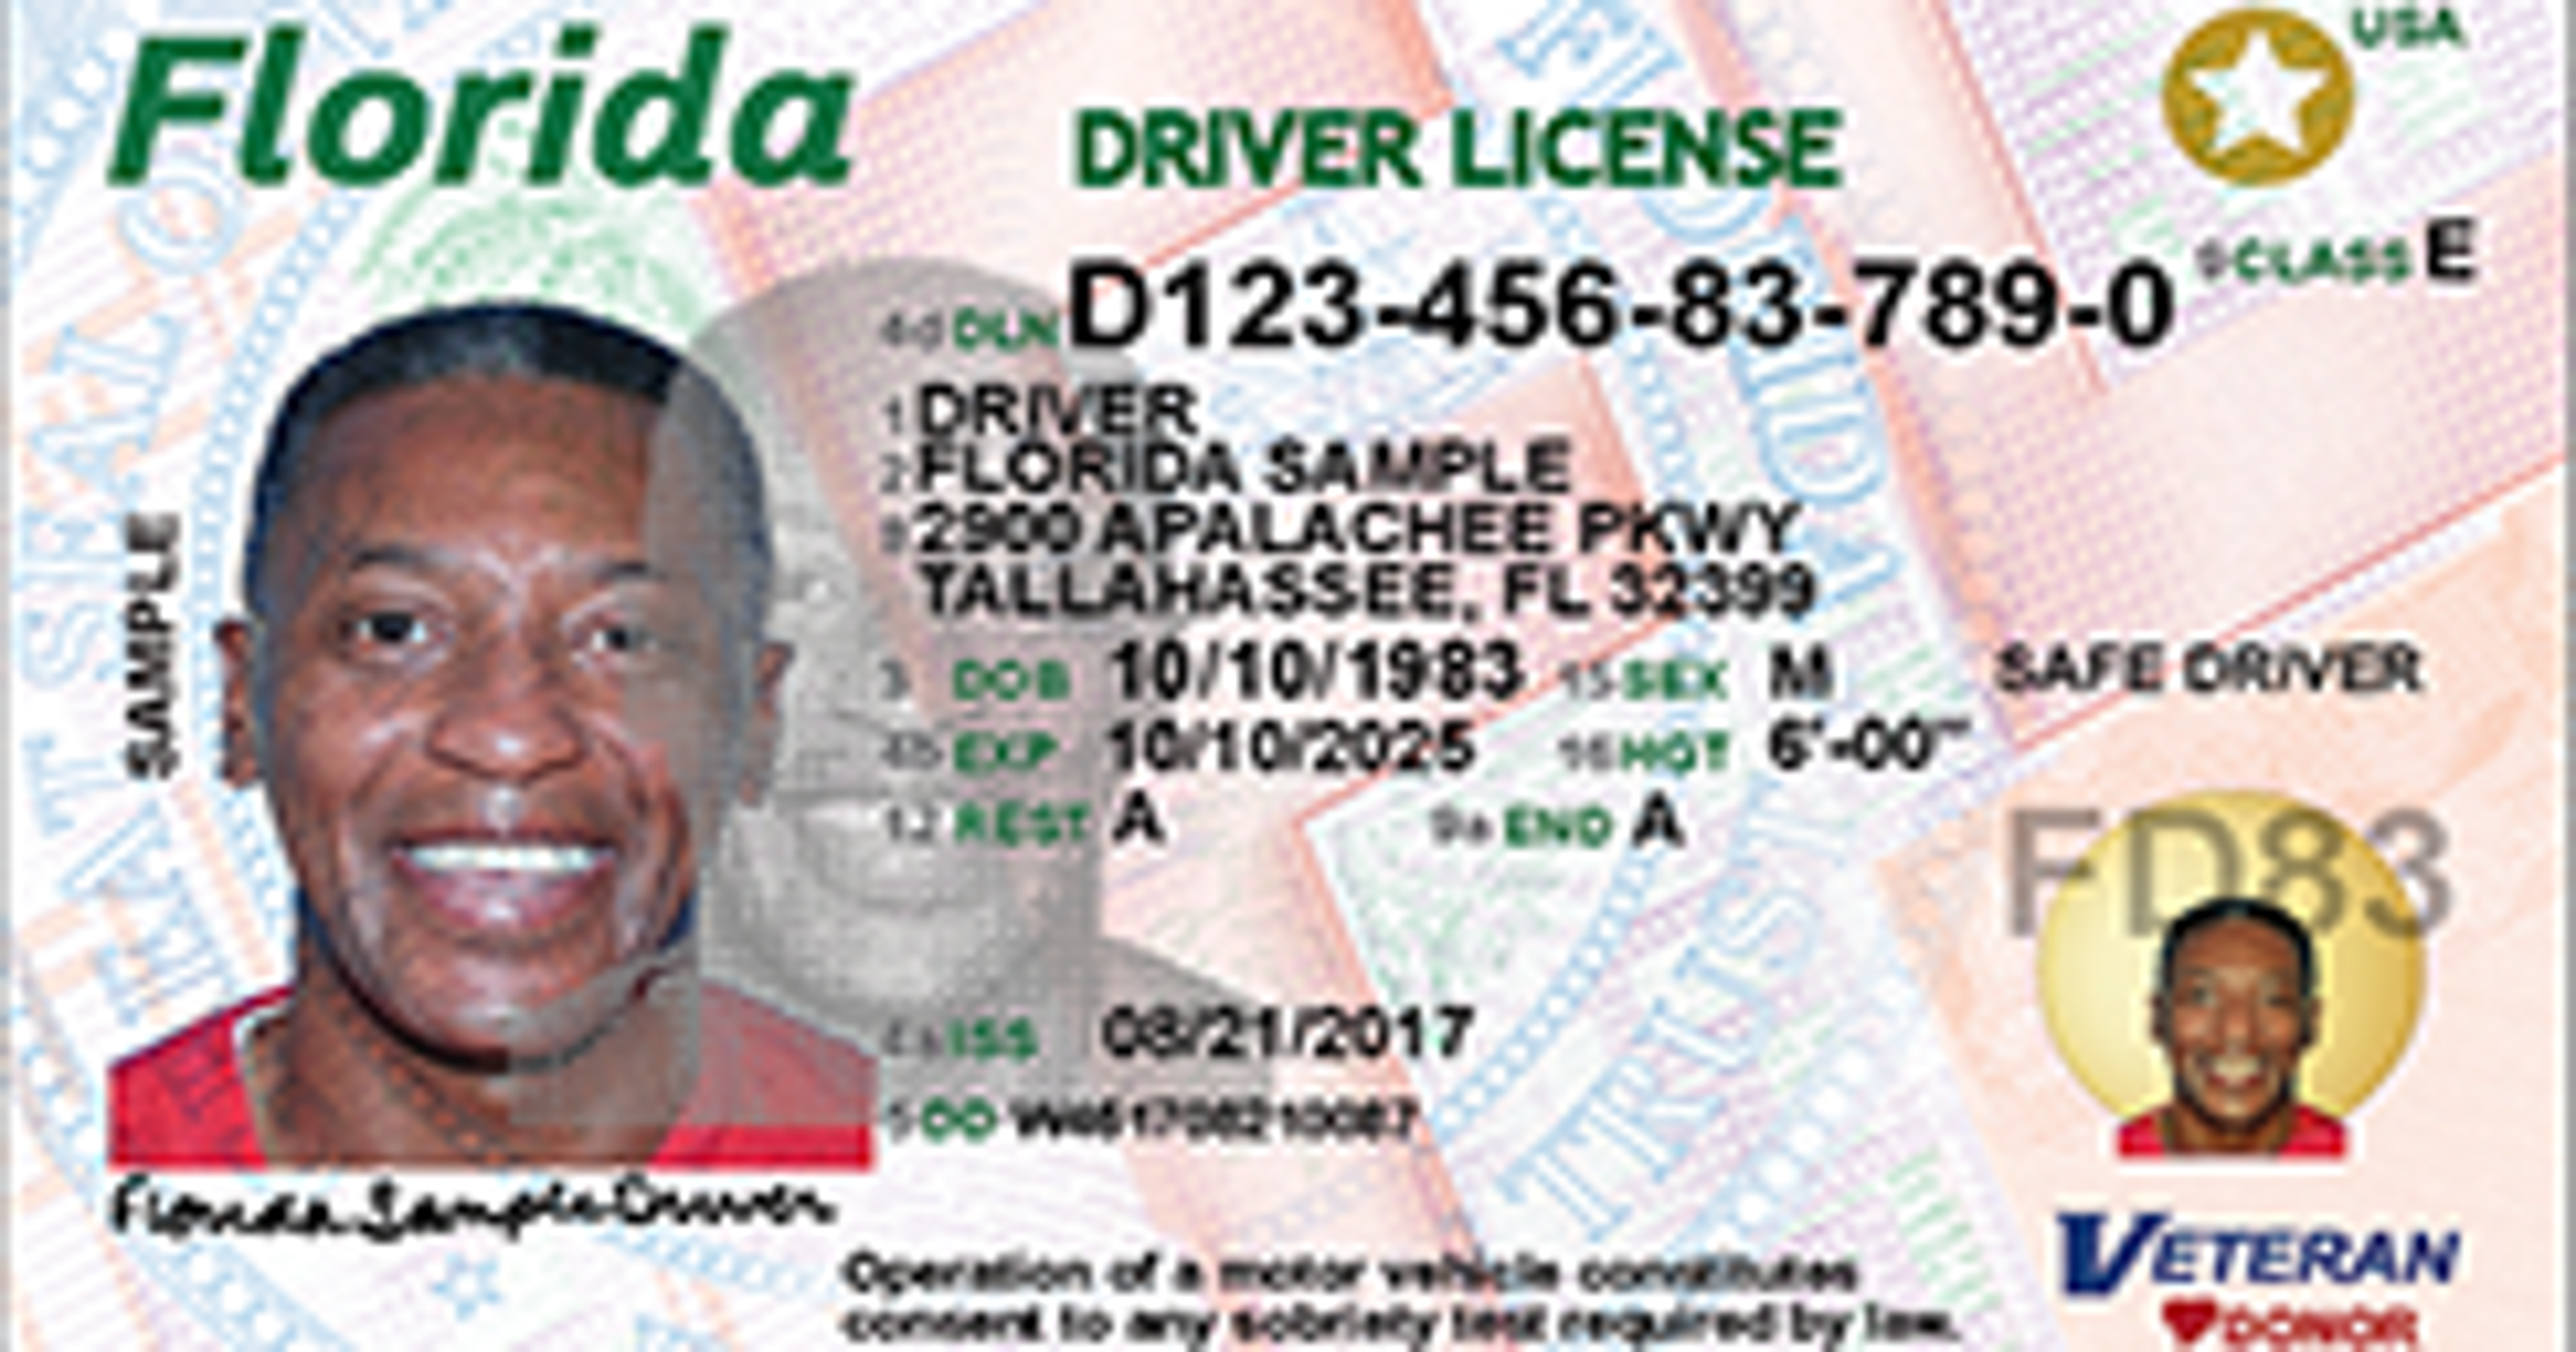 Licenses Get For Ready Id Thumb Driver's Up New Cards